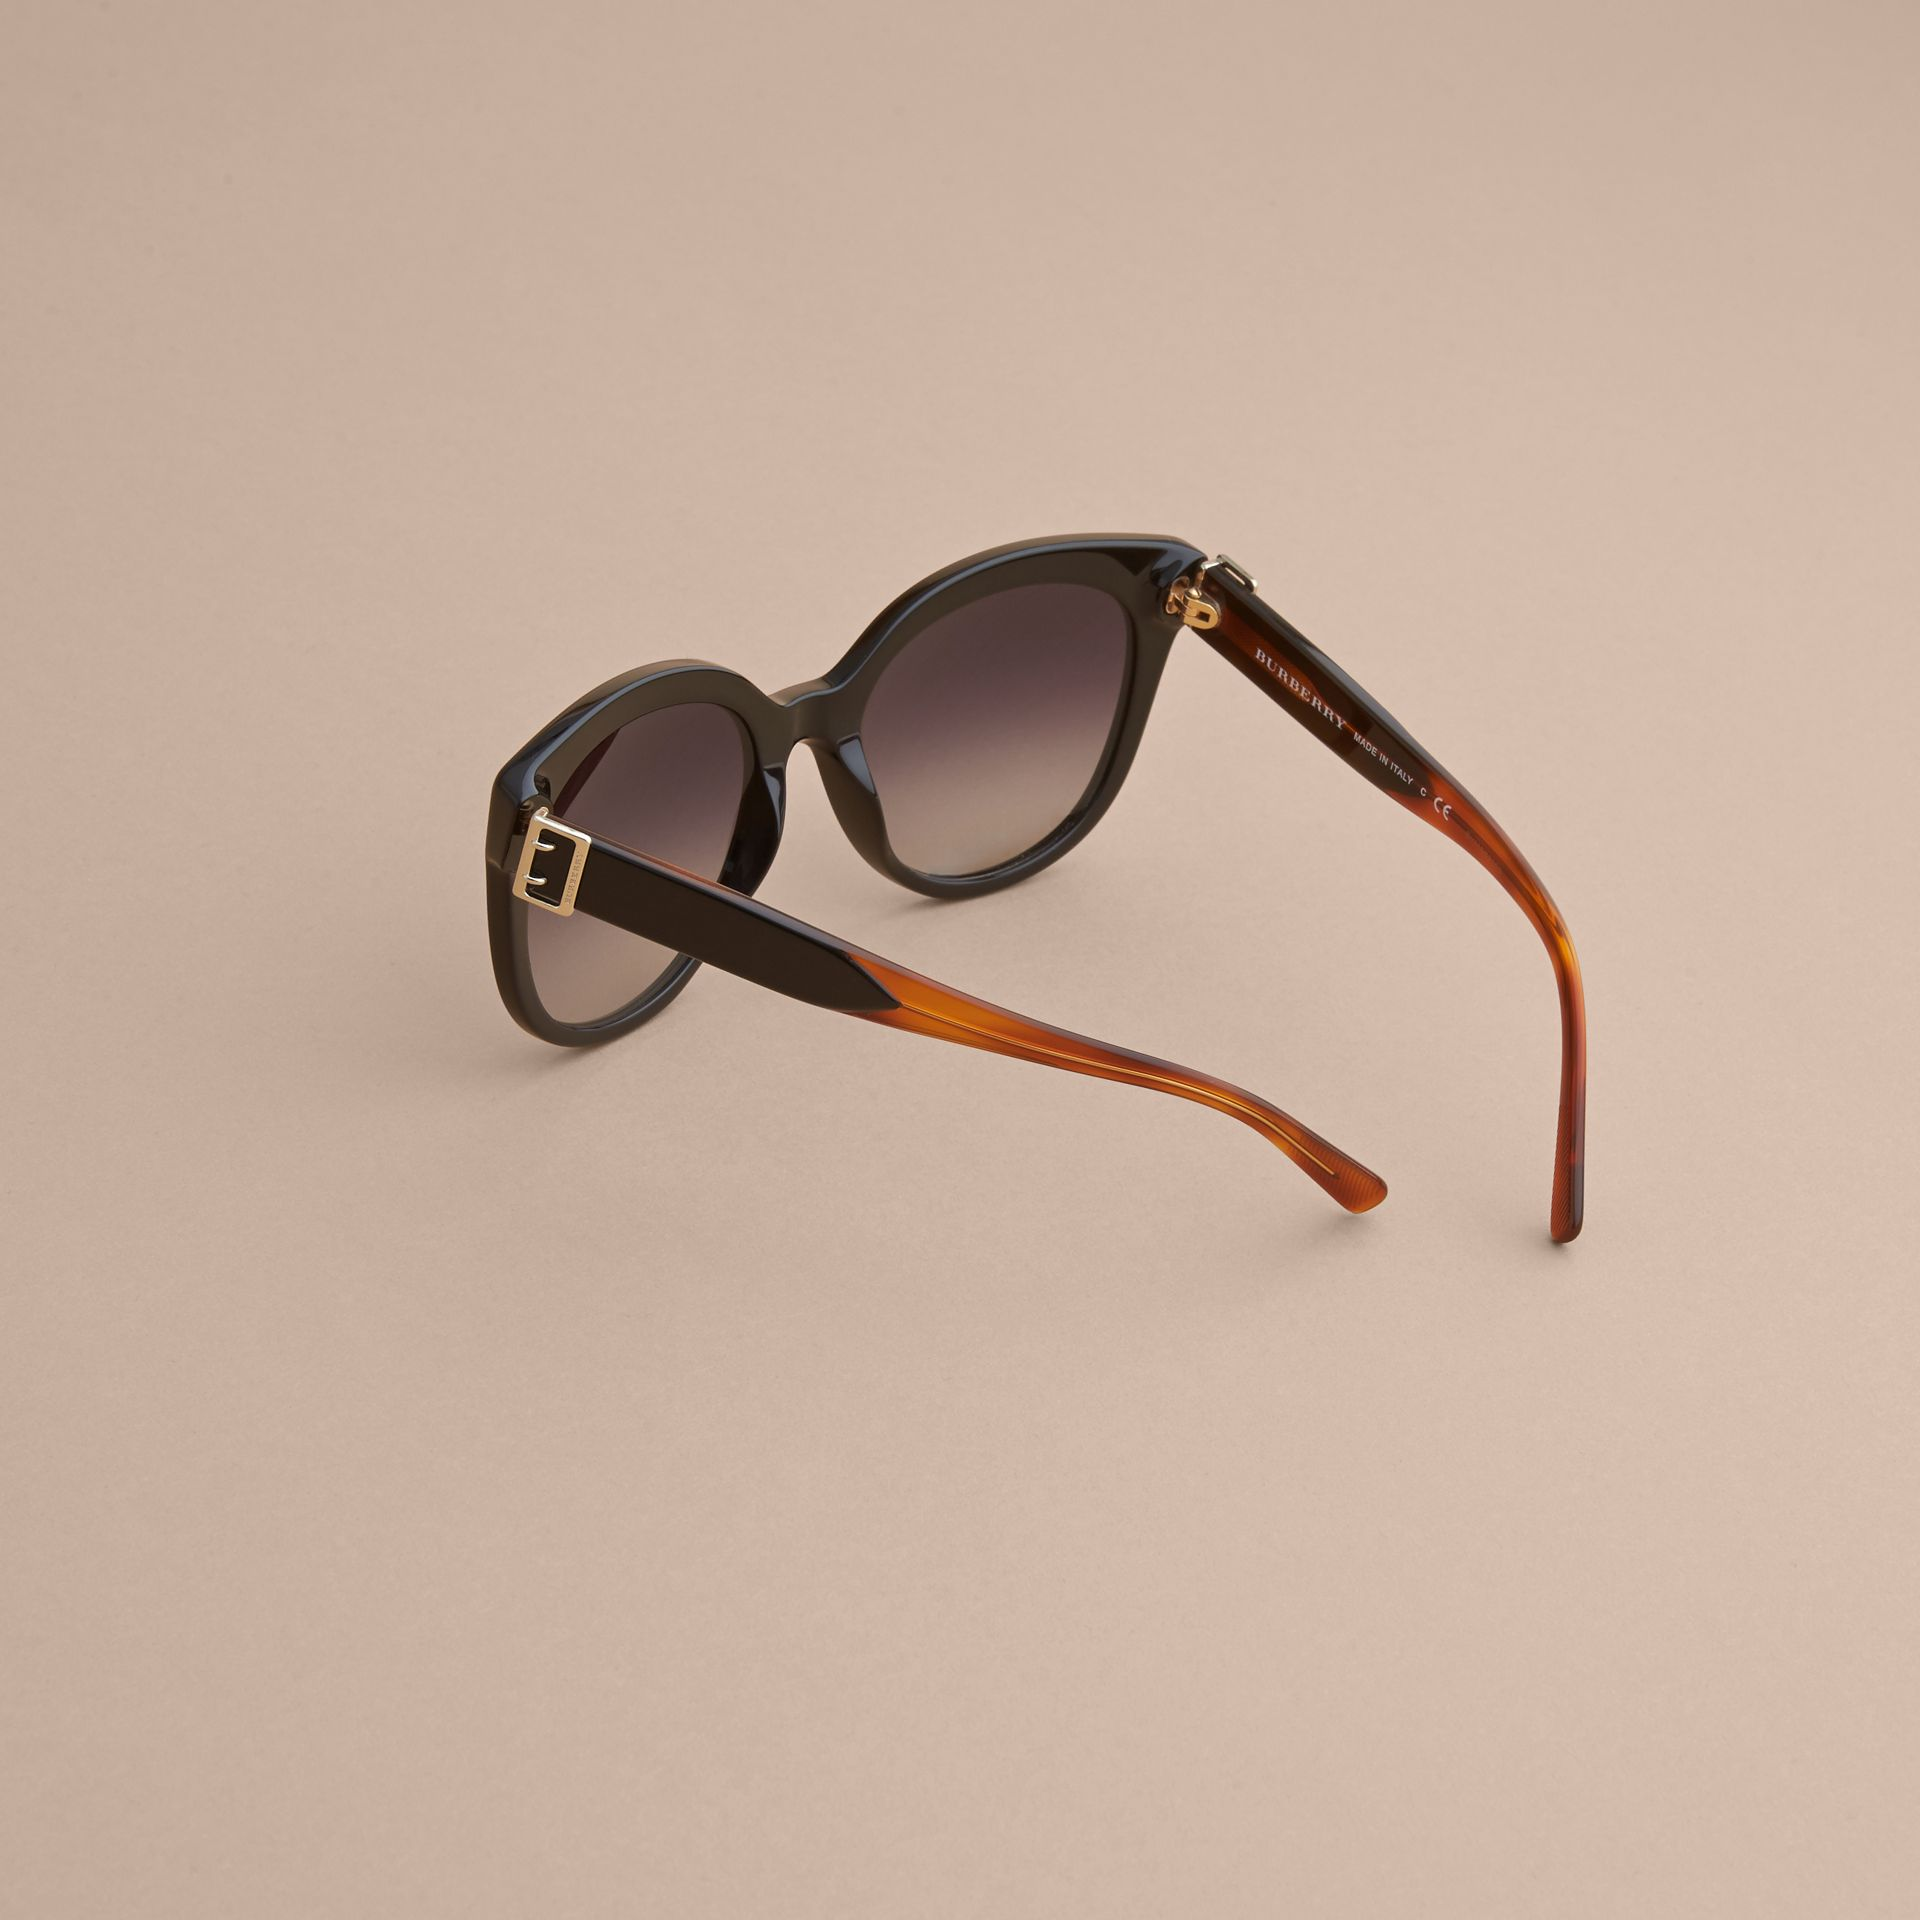 Buckle Detail Cat-eye Frame Sunglasses in Black - Women | Burberry Hong Kong - gallery image 3